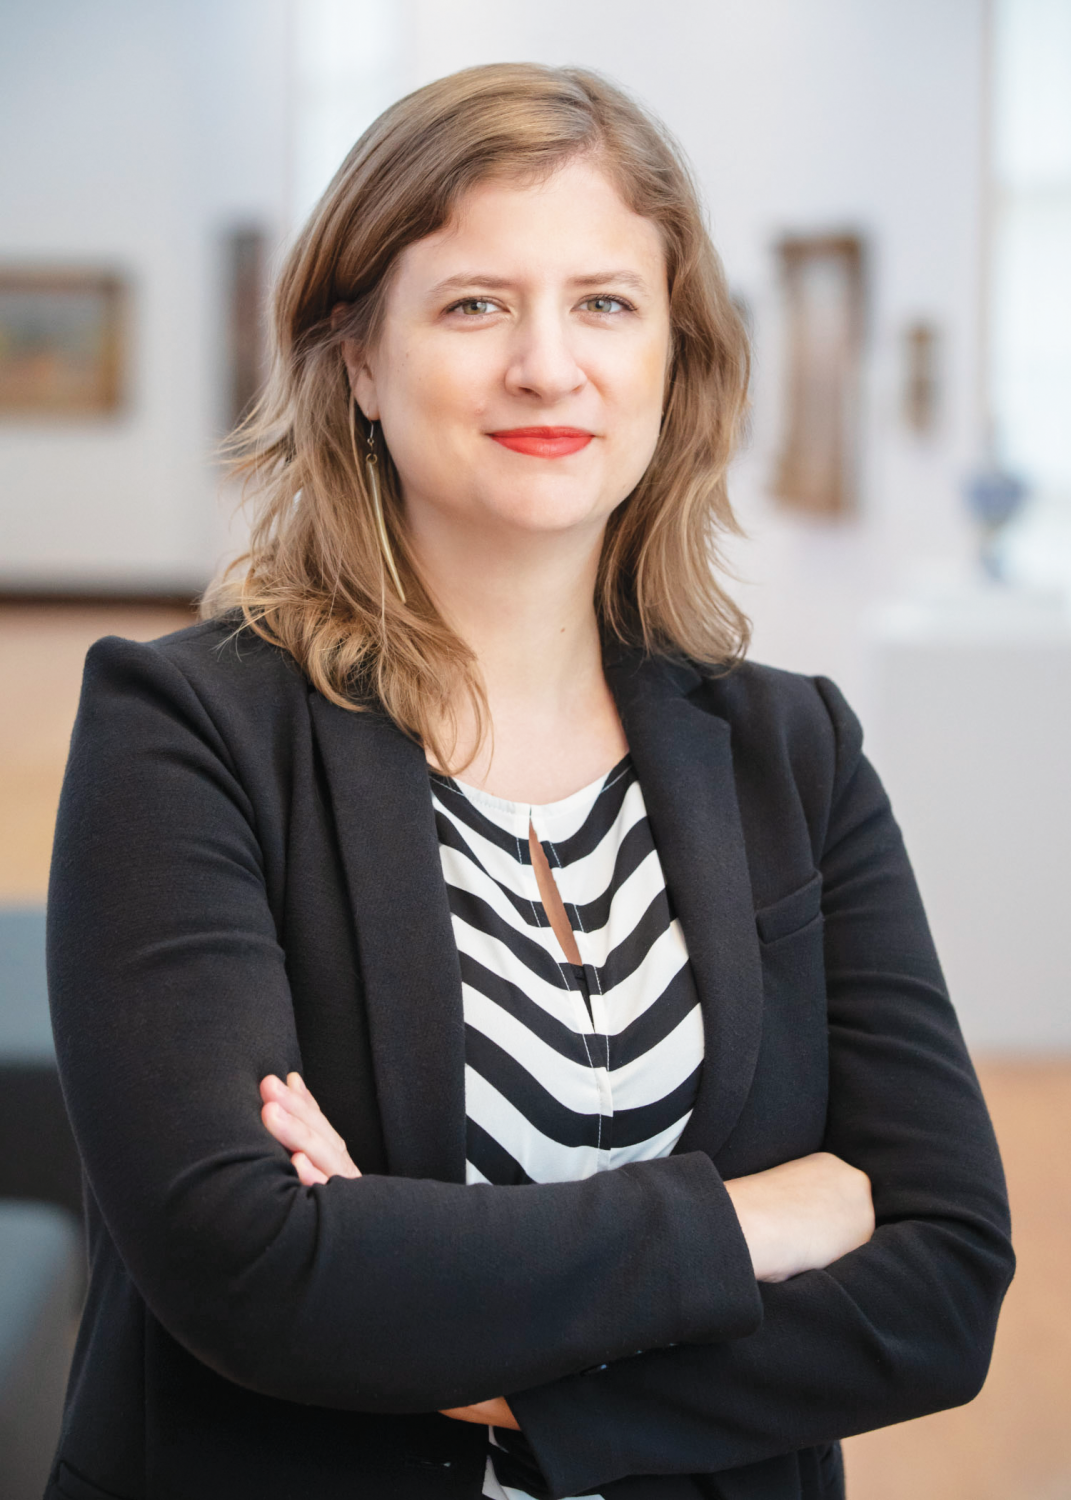 Color photo of Amy L. Powell, Curator of Modern and Contemporary Art at Krannert Art Museum, a white woman with dark blonde hair. She stands in a gallery, professionally dressed with arms crossed in front of her.